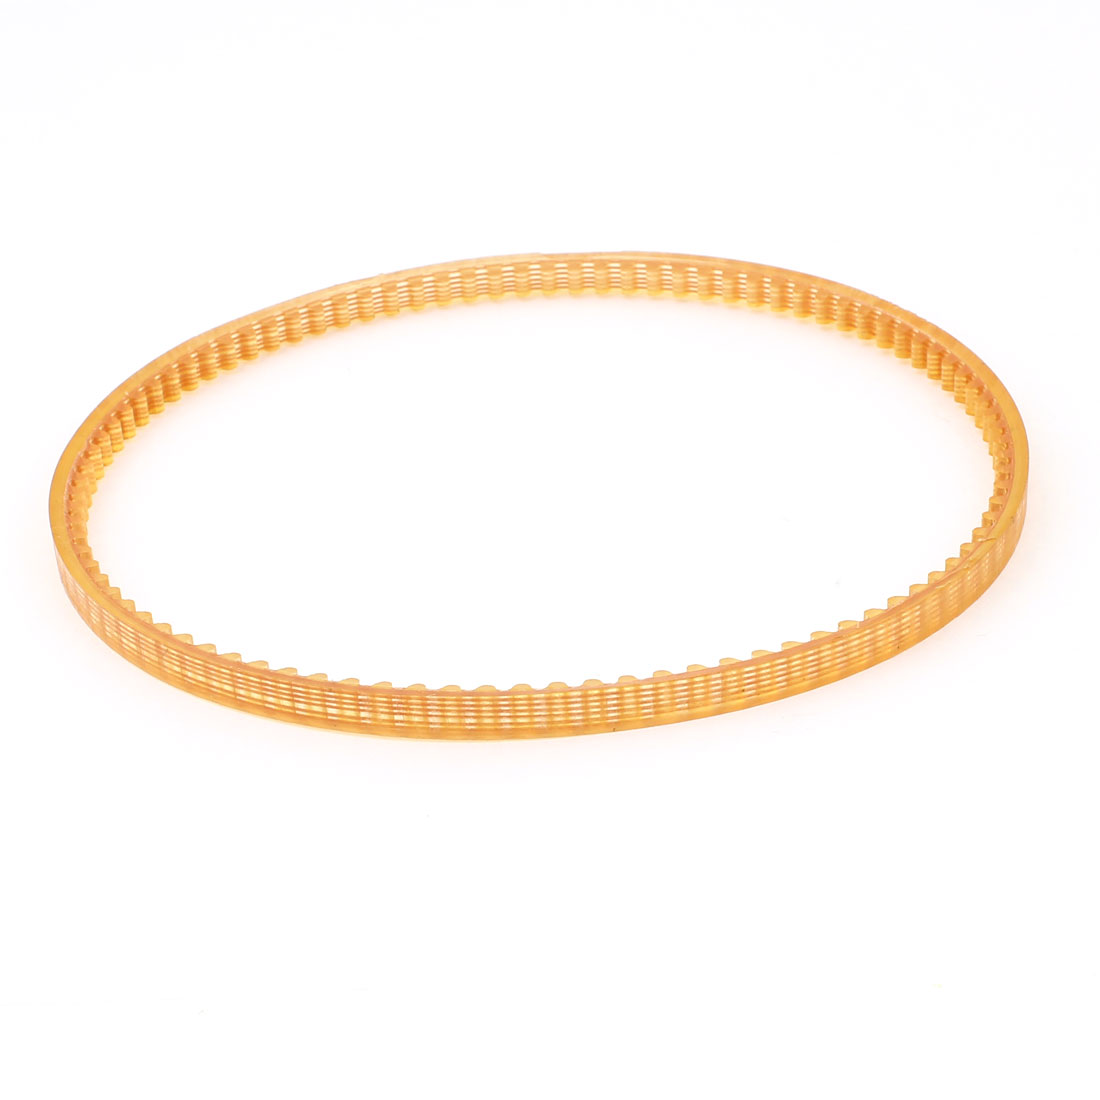 4mm Pitch 370mm Girth Single Sided Engine PU Timing Belt Orange